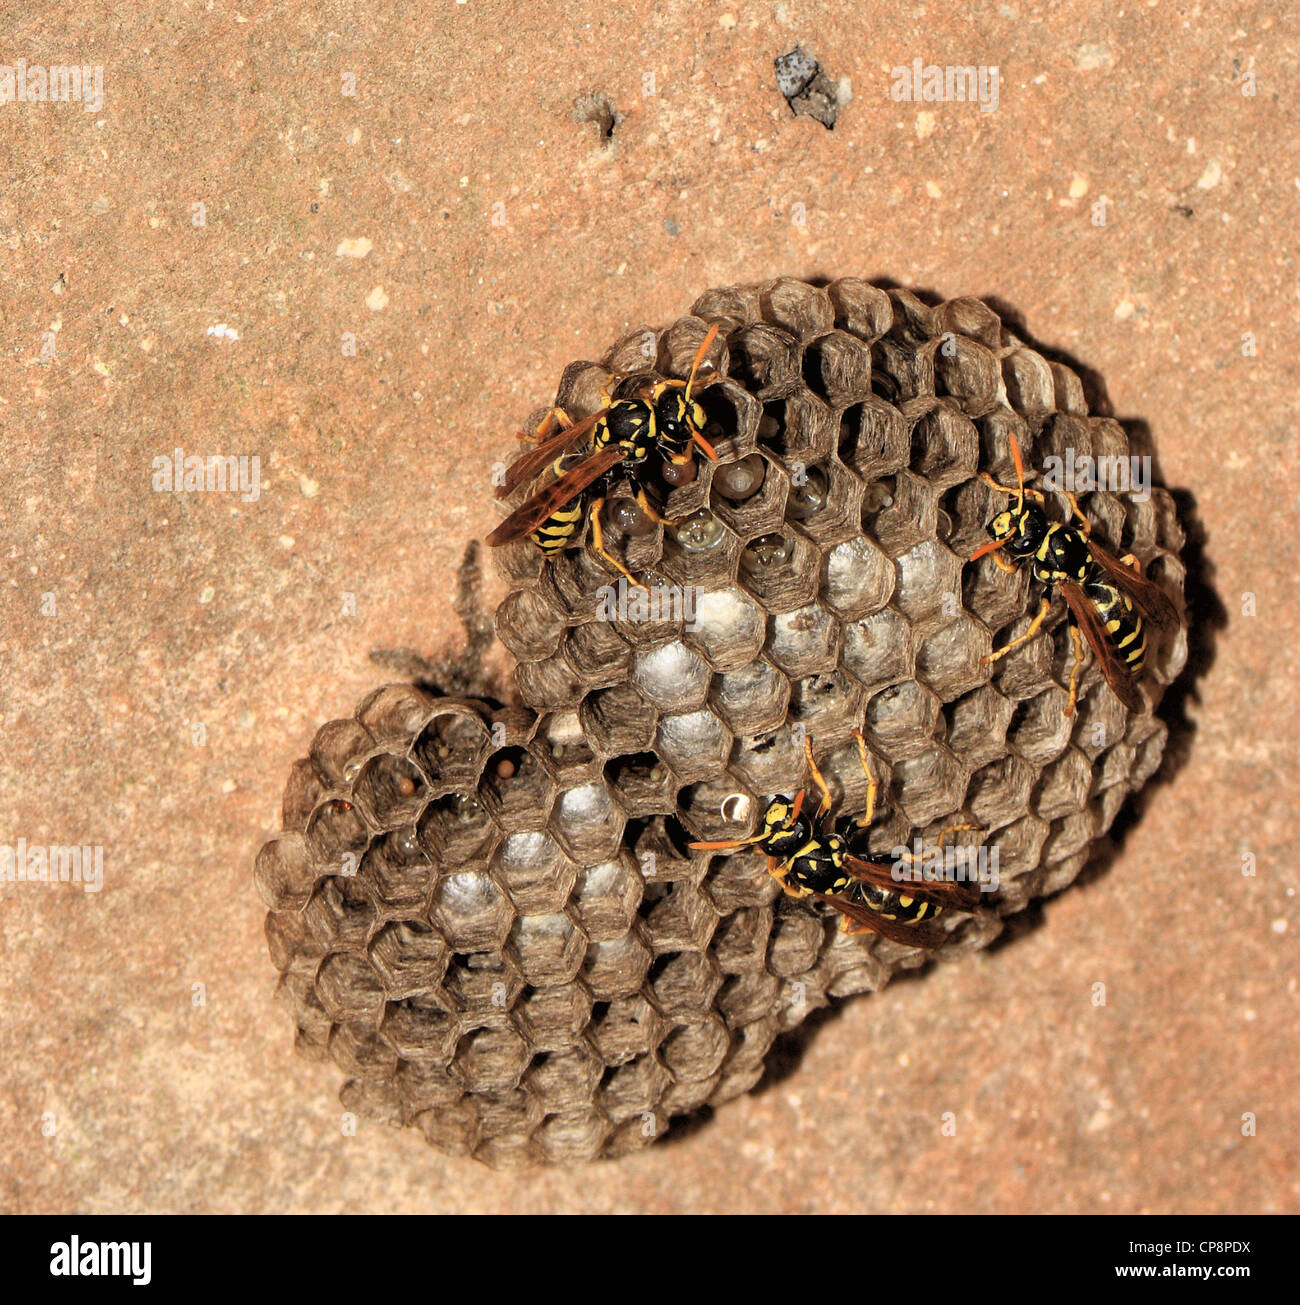 european paper wasps polistes dominula females on their nests stock photo royalty free image. Black Bedroom Furniture Sets. Home Design Ideas